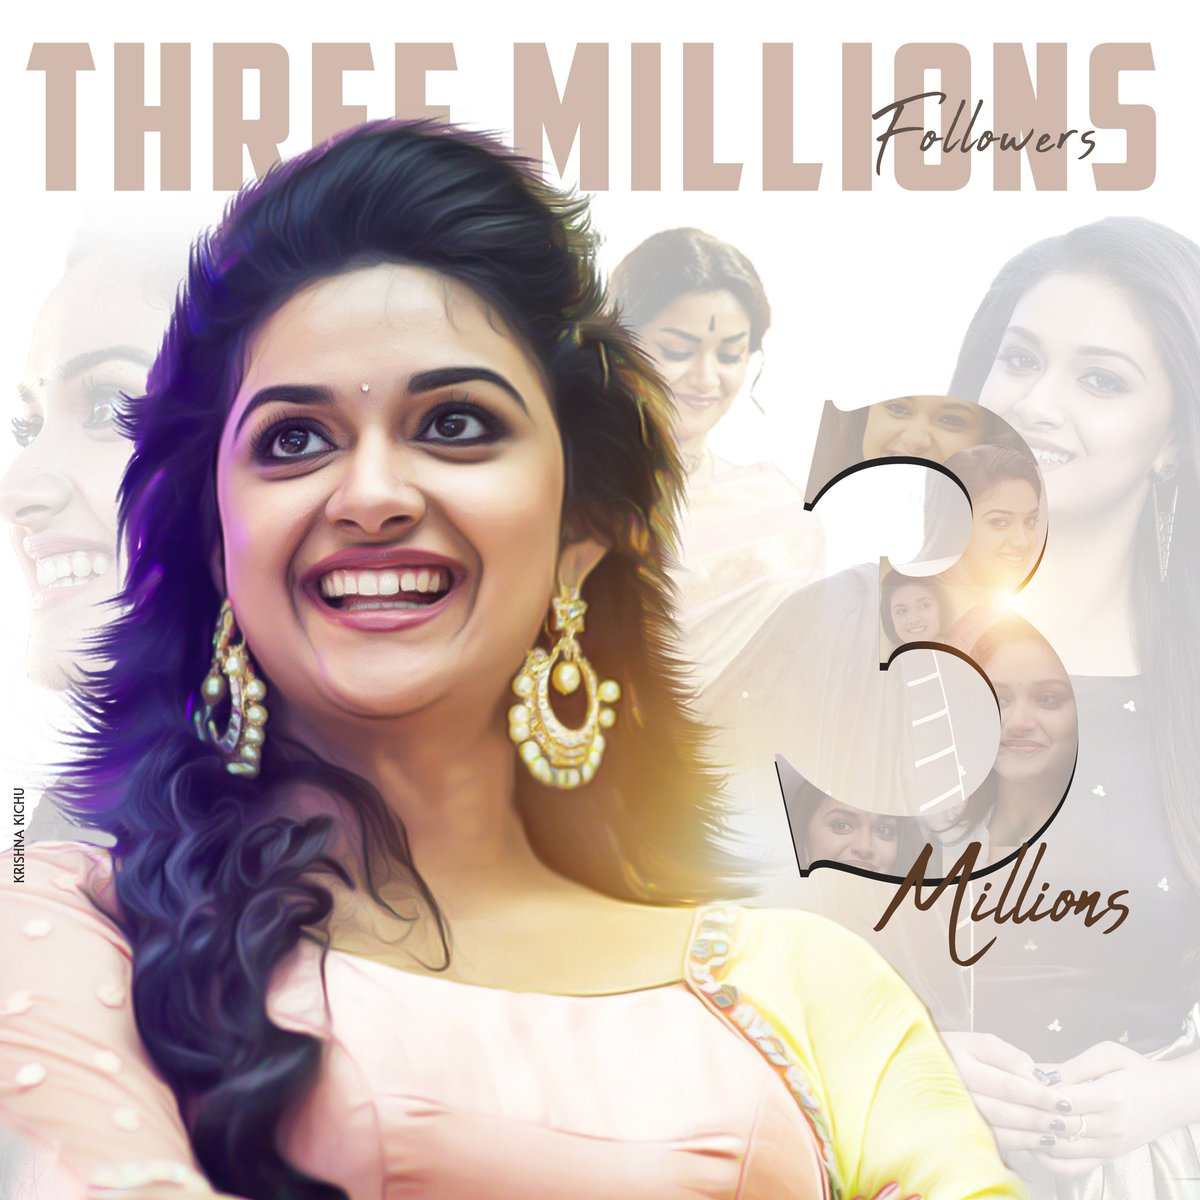 Congrats.. thalaivi for reached 3 Million families   more on the way bae  @KeerthyOfficial #KeerthyAdvBdayTrendOnJuly8   #3MLovesForKittyInTwitter #KeerthySuresh pic.twitter.com/dLnFYpwhSv